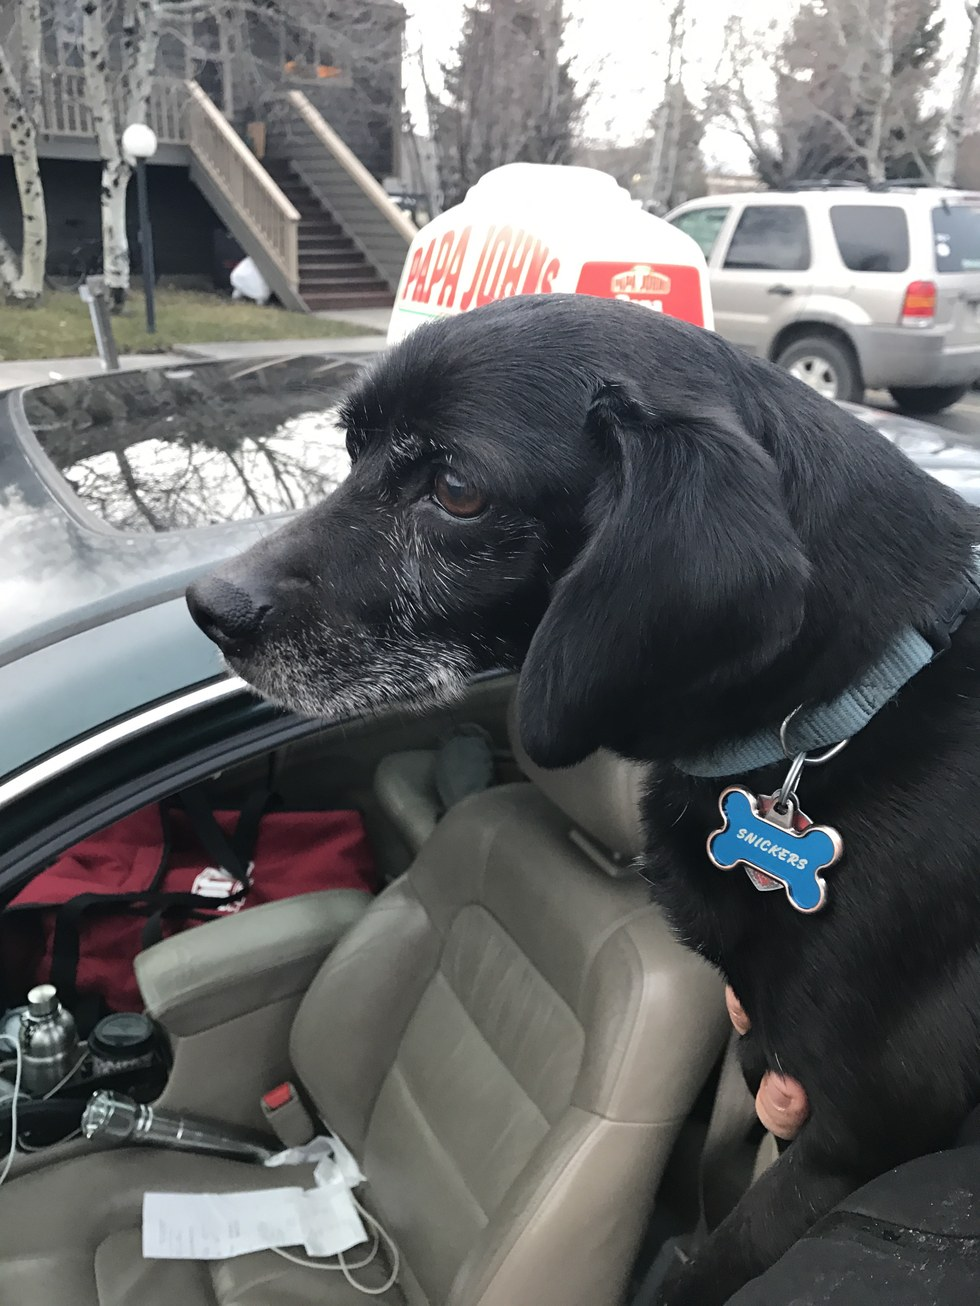 Pizza Delivery Guy Delays Pizza Delivery To Complete A Dog's Rescue